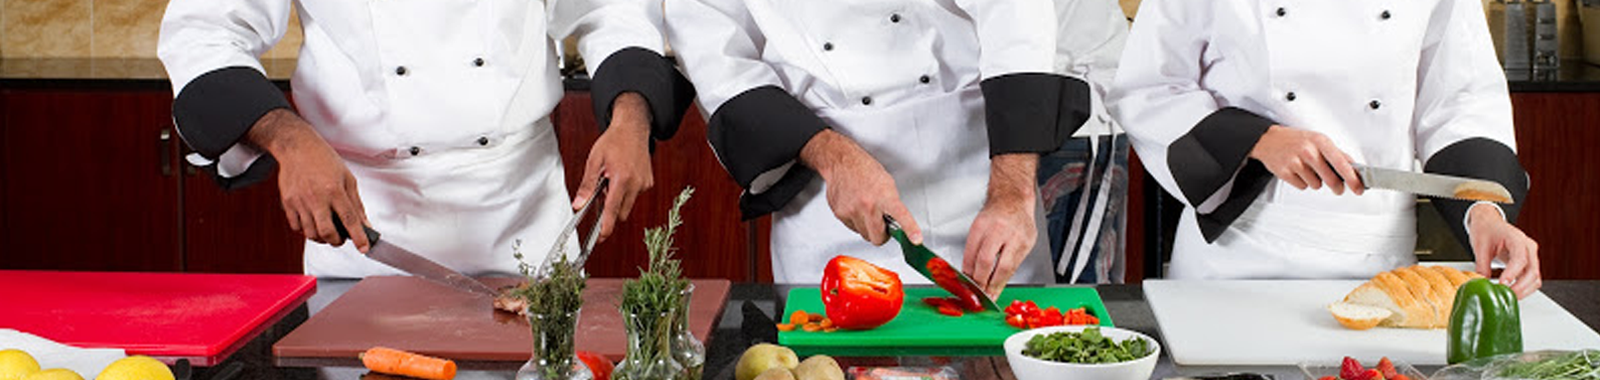 High quality chefs wear including jackets and aprons